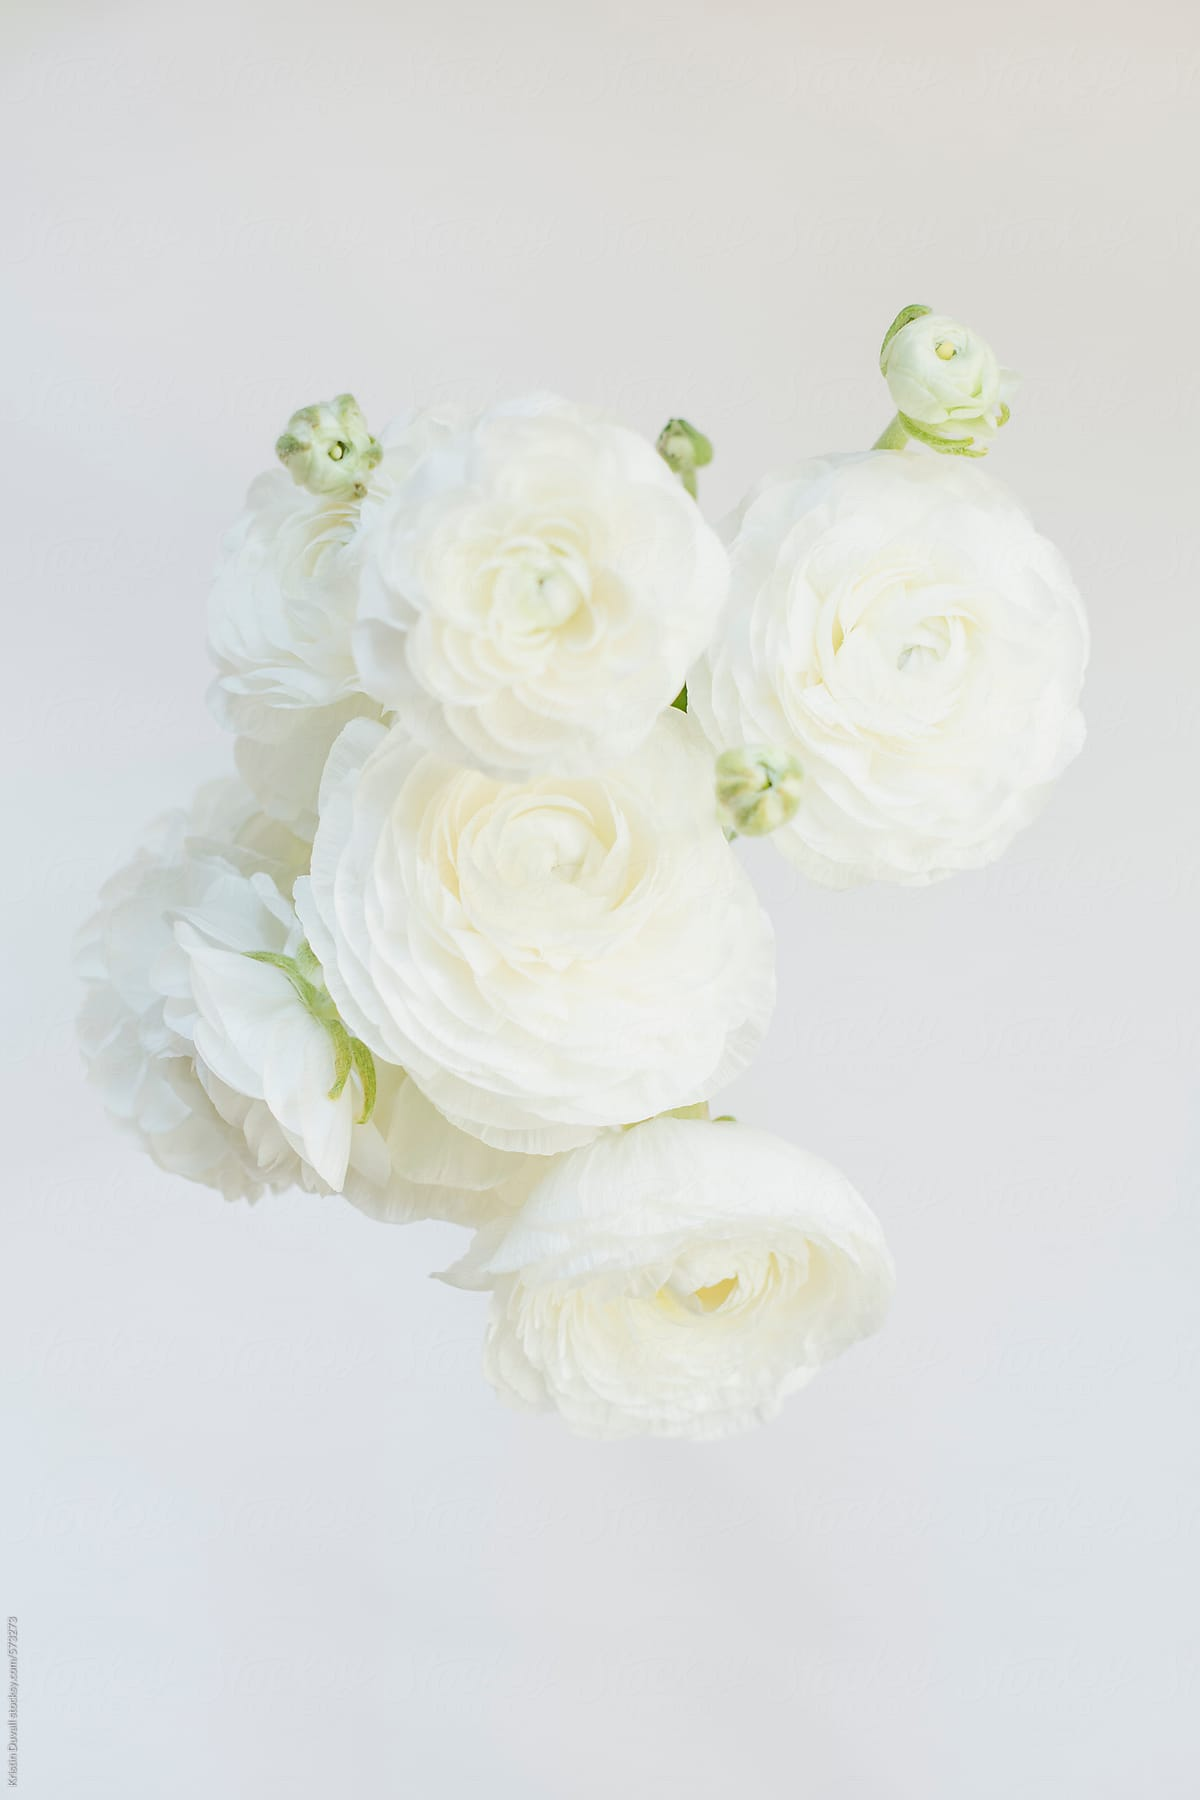 Bunch of white ranunculus flowers stocksy united bunch of white ranunculus flowers by kristin duvall for stocksy united mightylinksfo